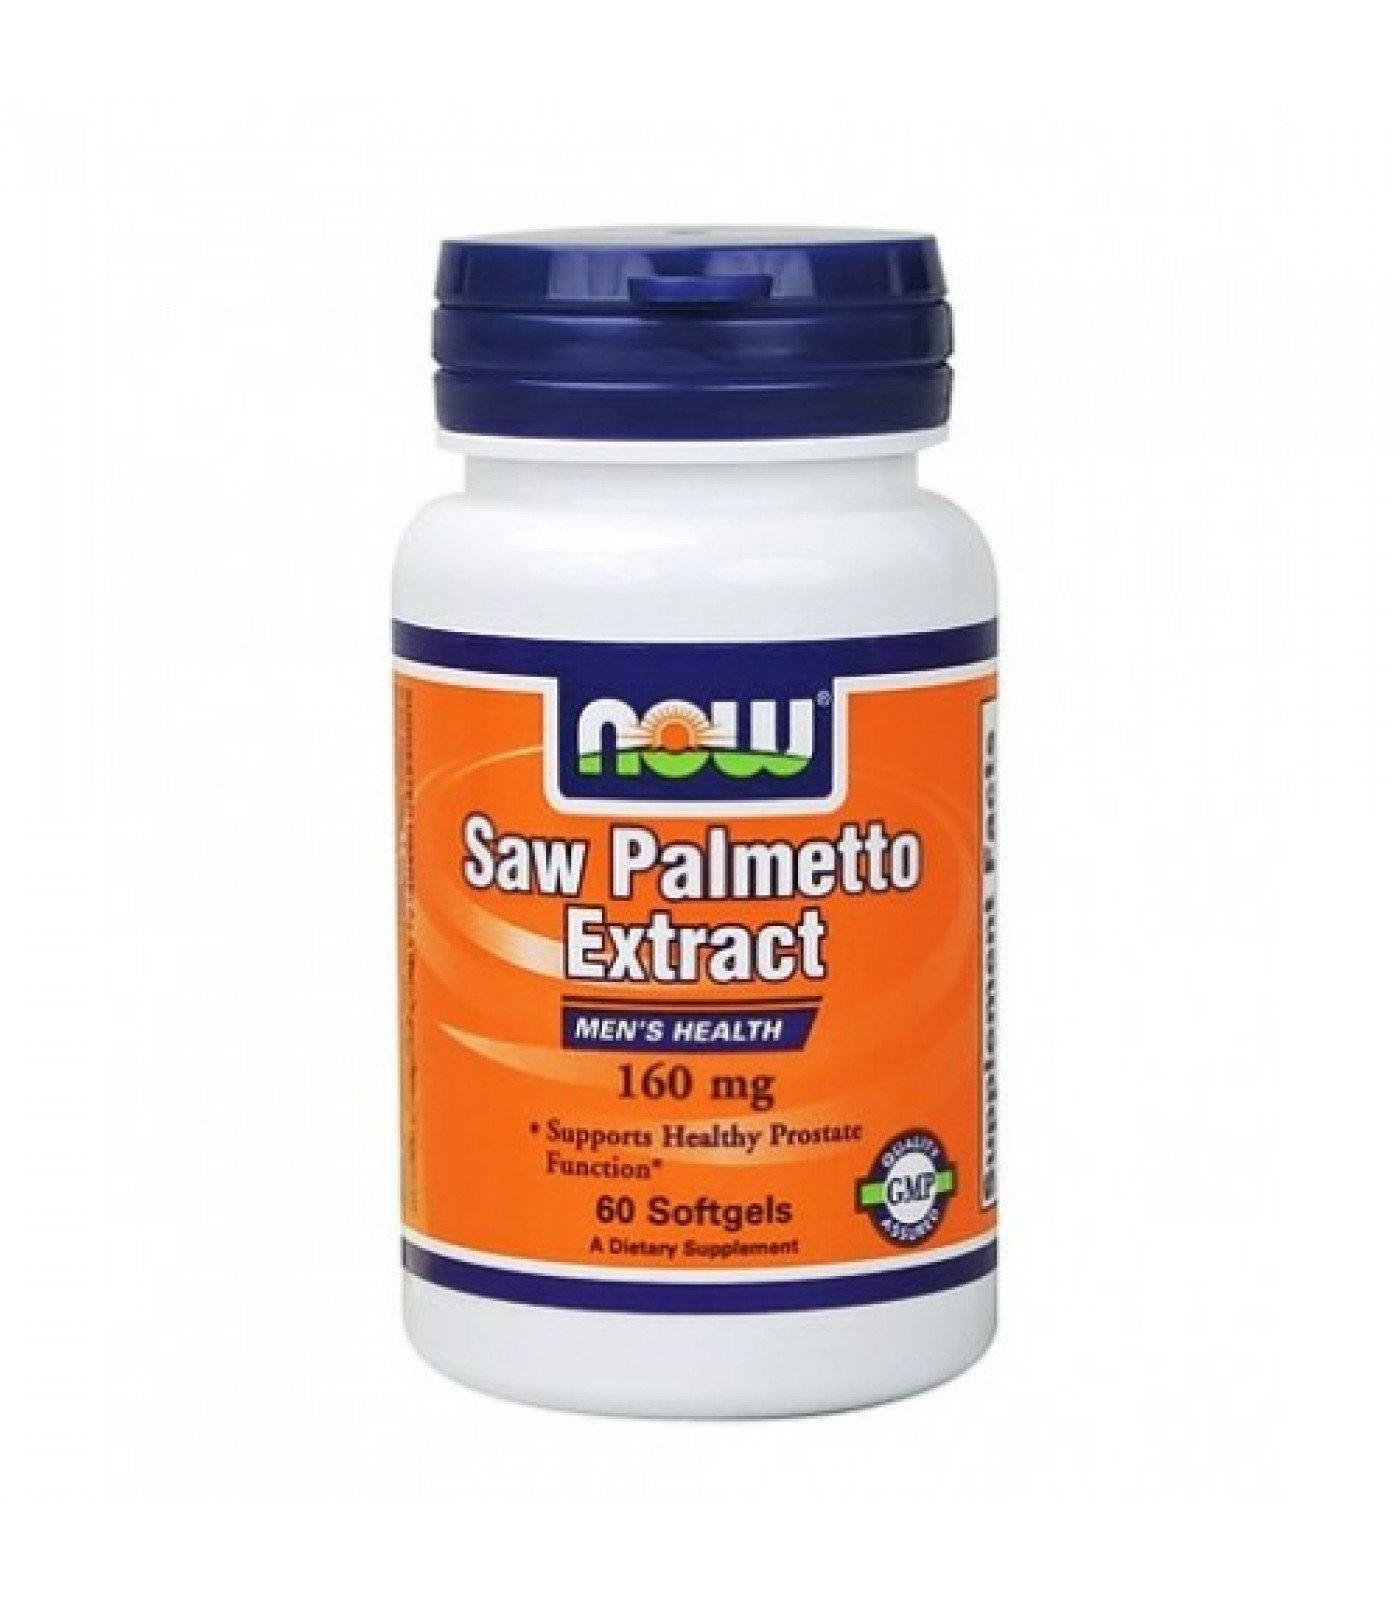 NOW - Saw Palmetto Extract 160mg. / 60 Softgels.